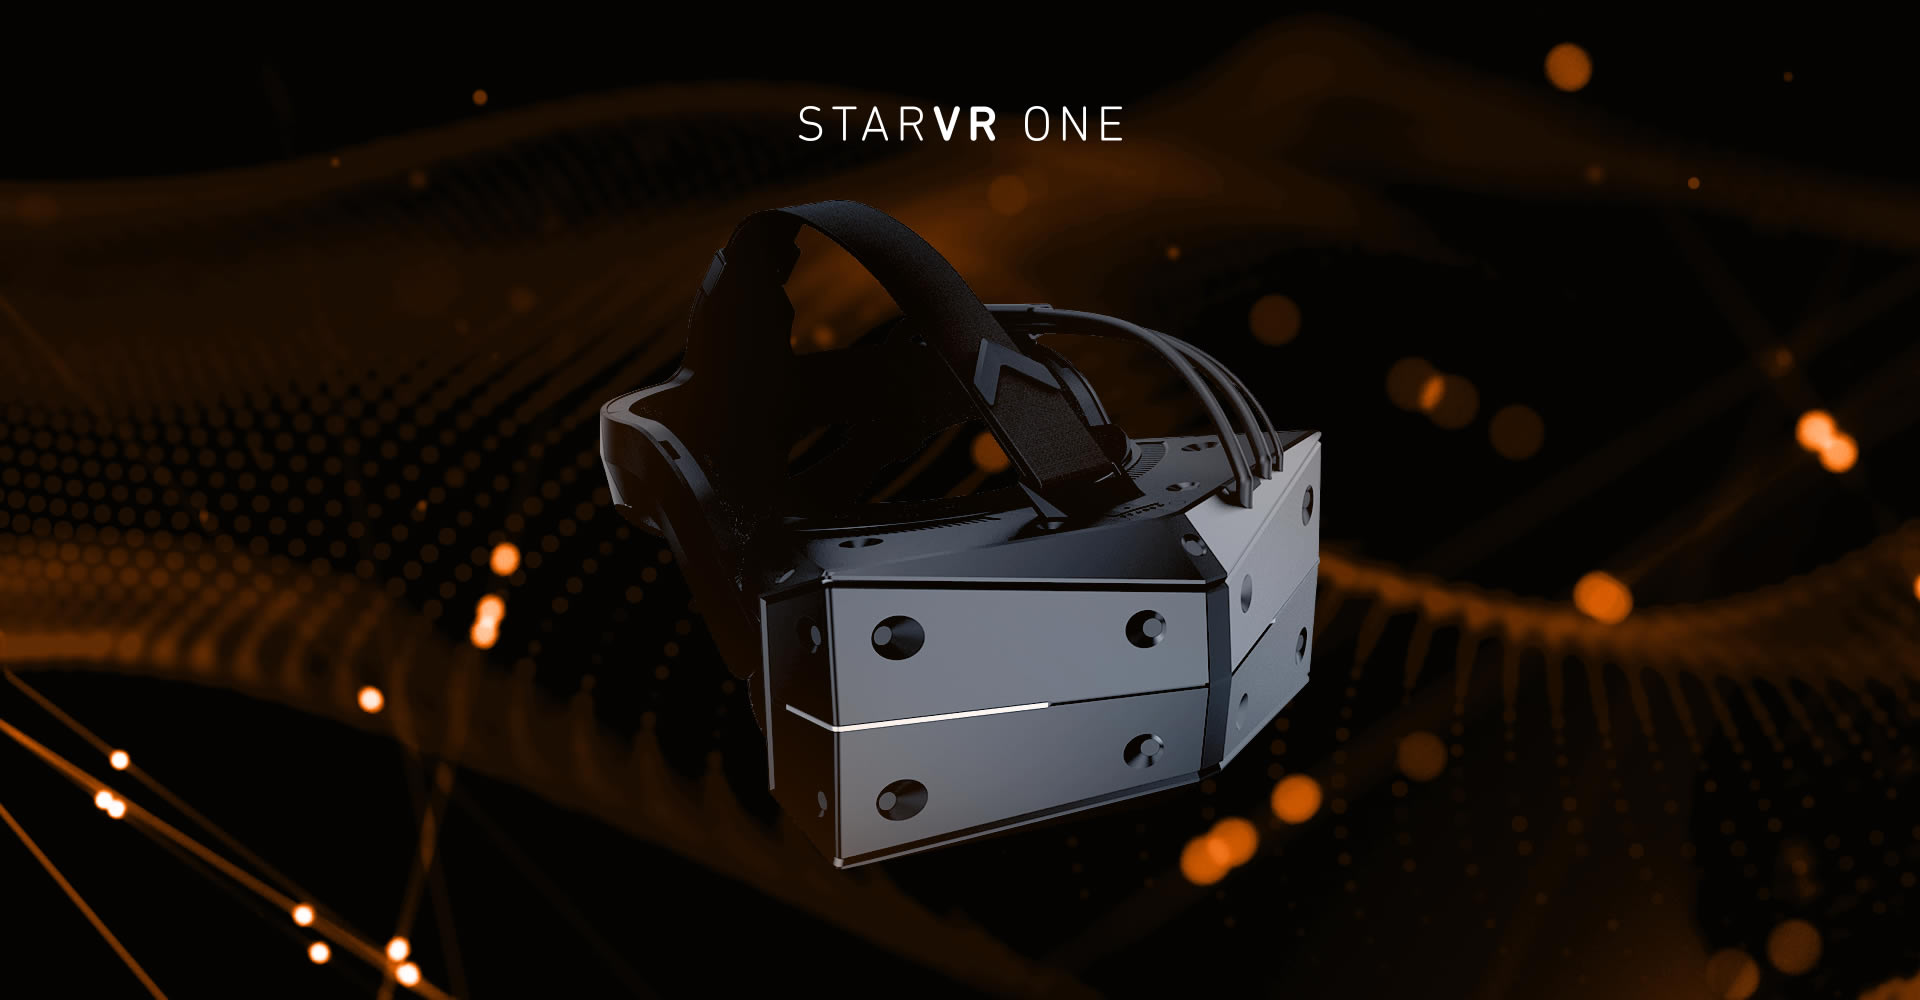 StarVR One Featured Image